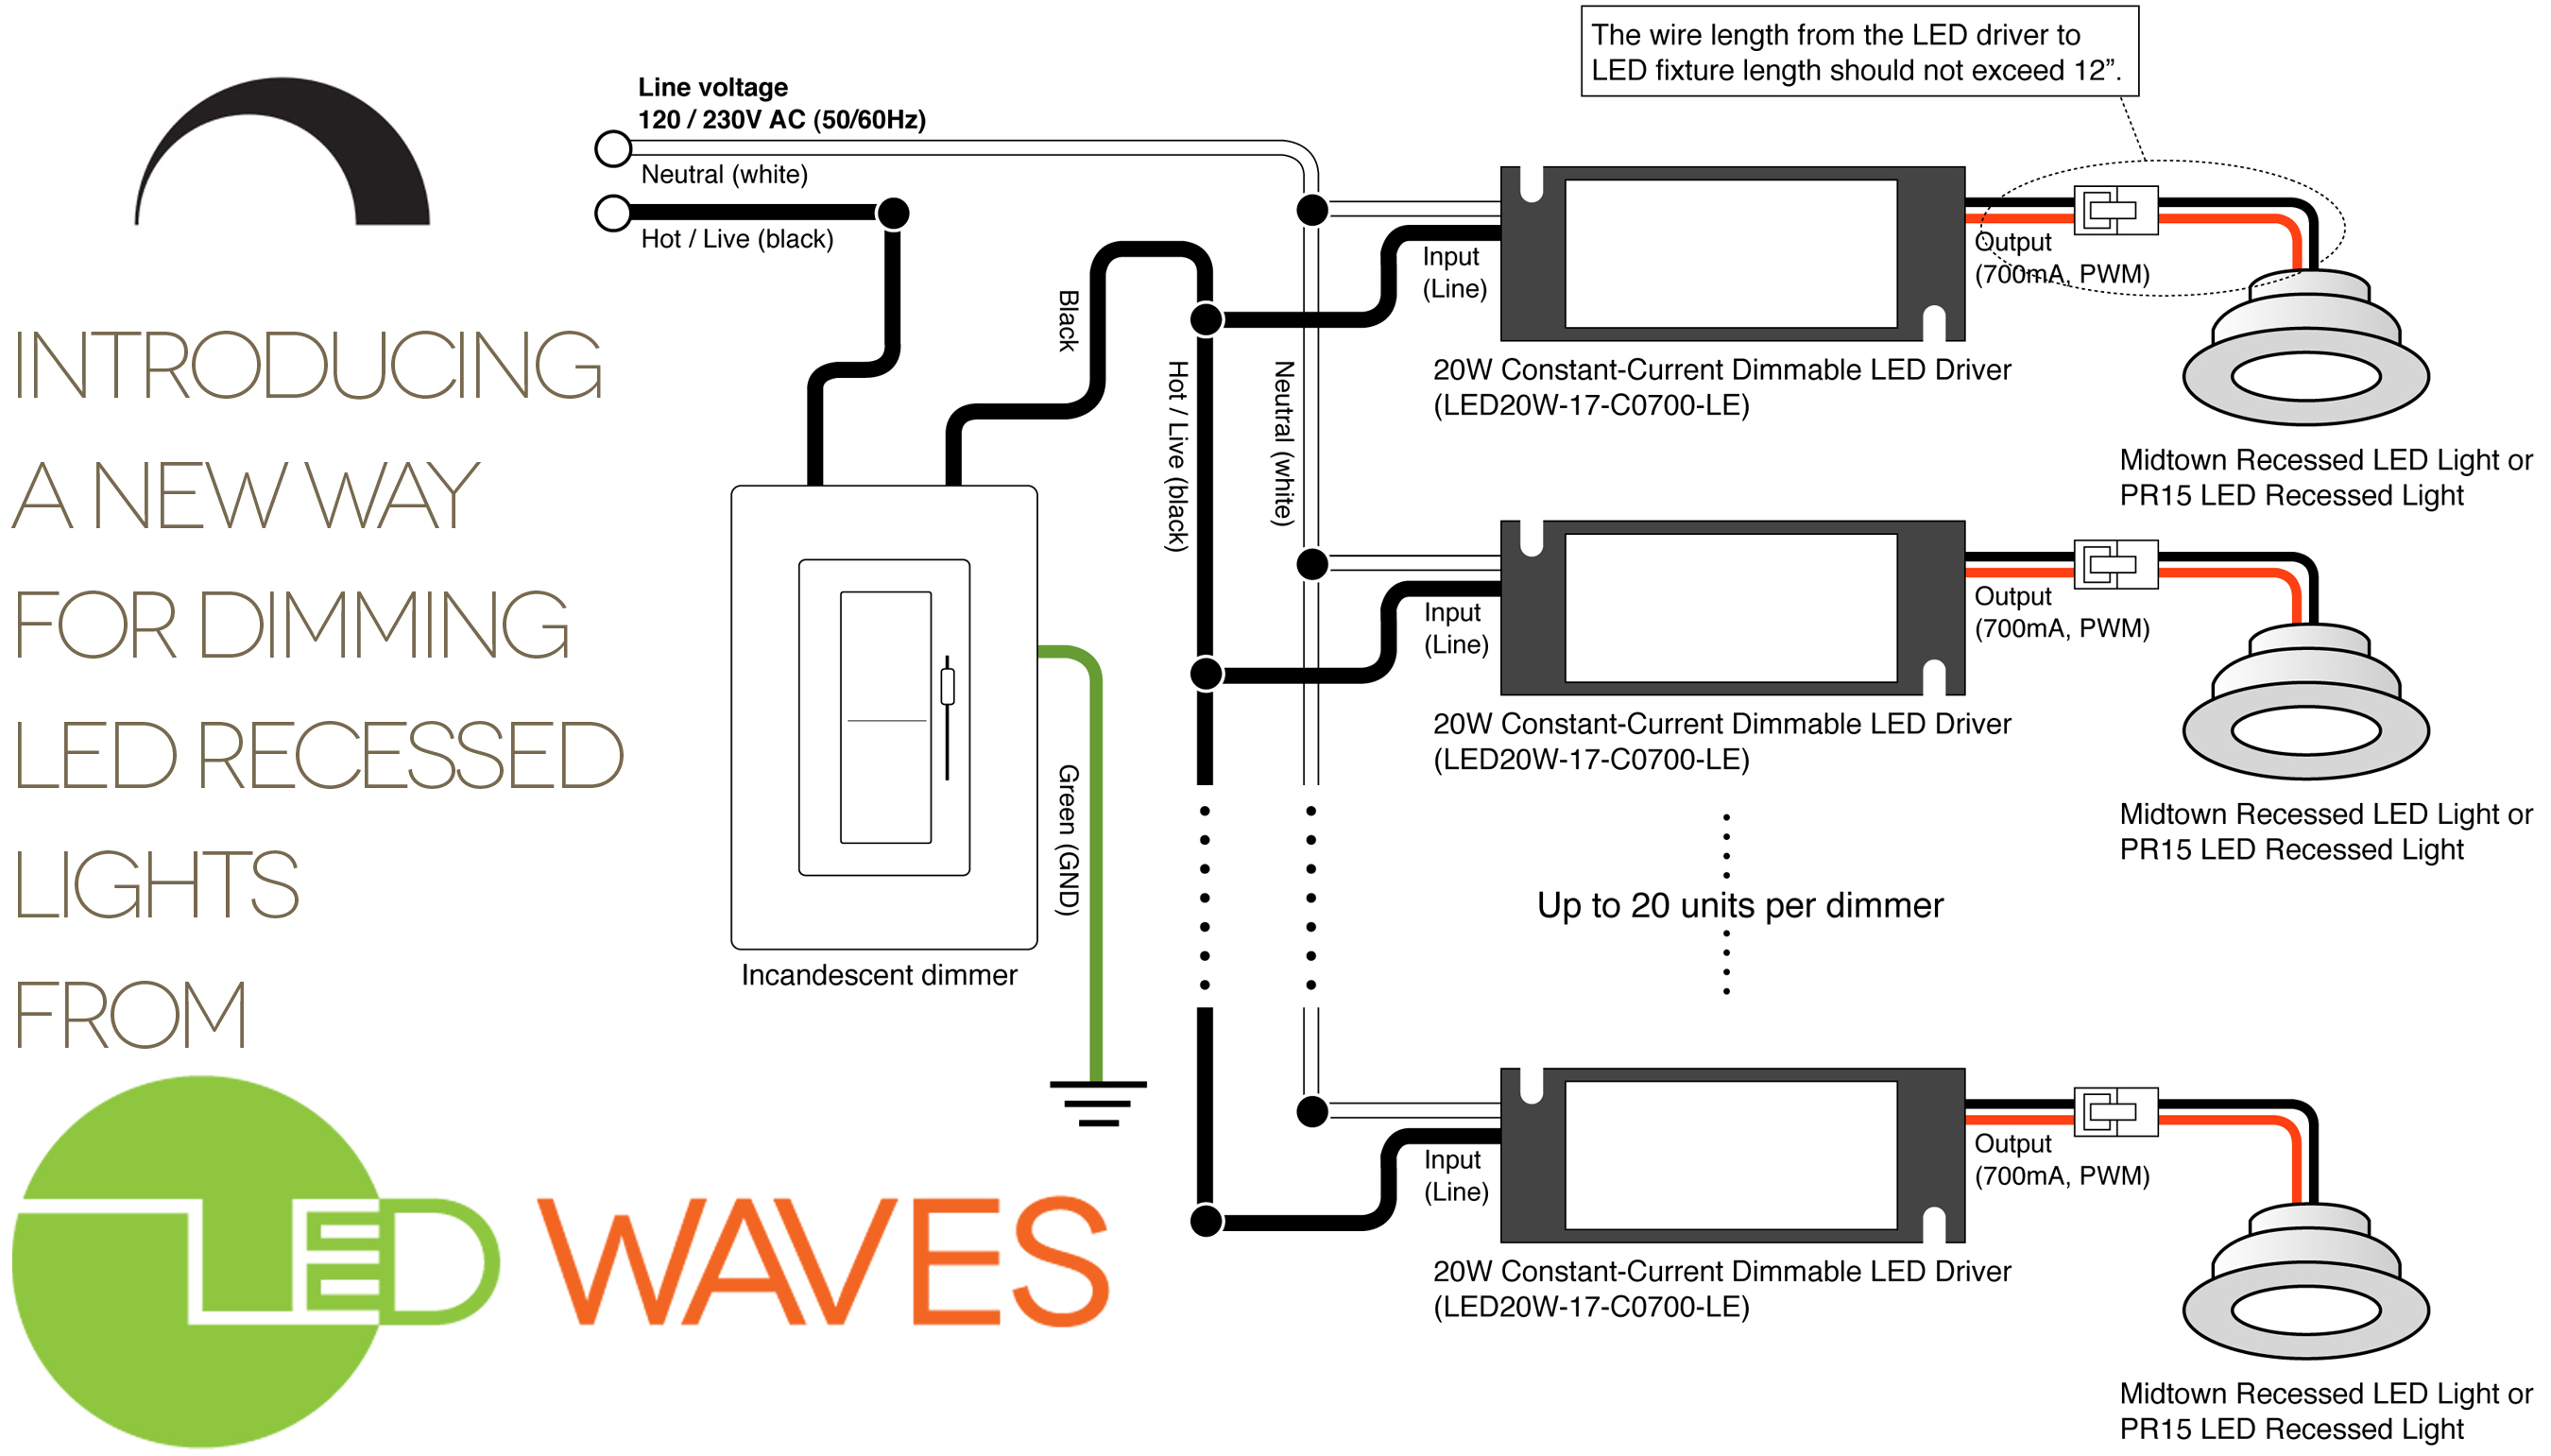 Wiring diagram for dimmable LED Recessed Lights led waves redesigns dimmable led recessed lights 120V LED Wiring Diagram at creativeand.co